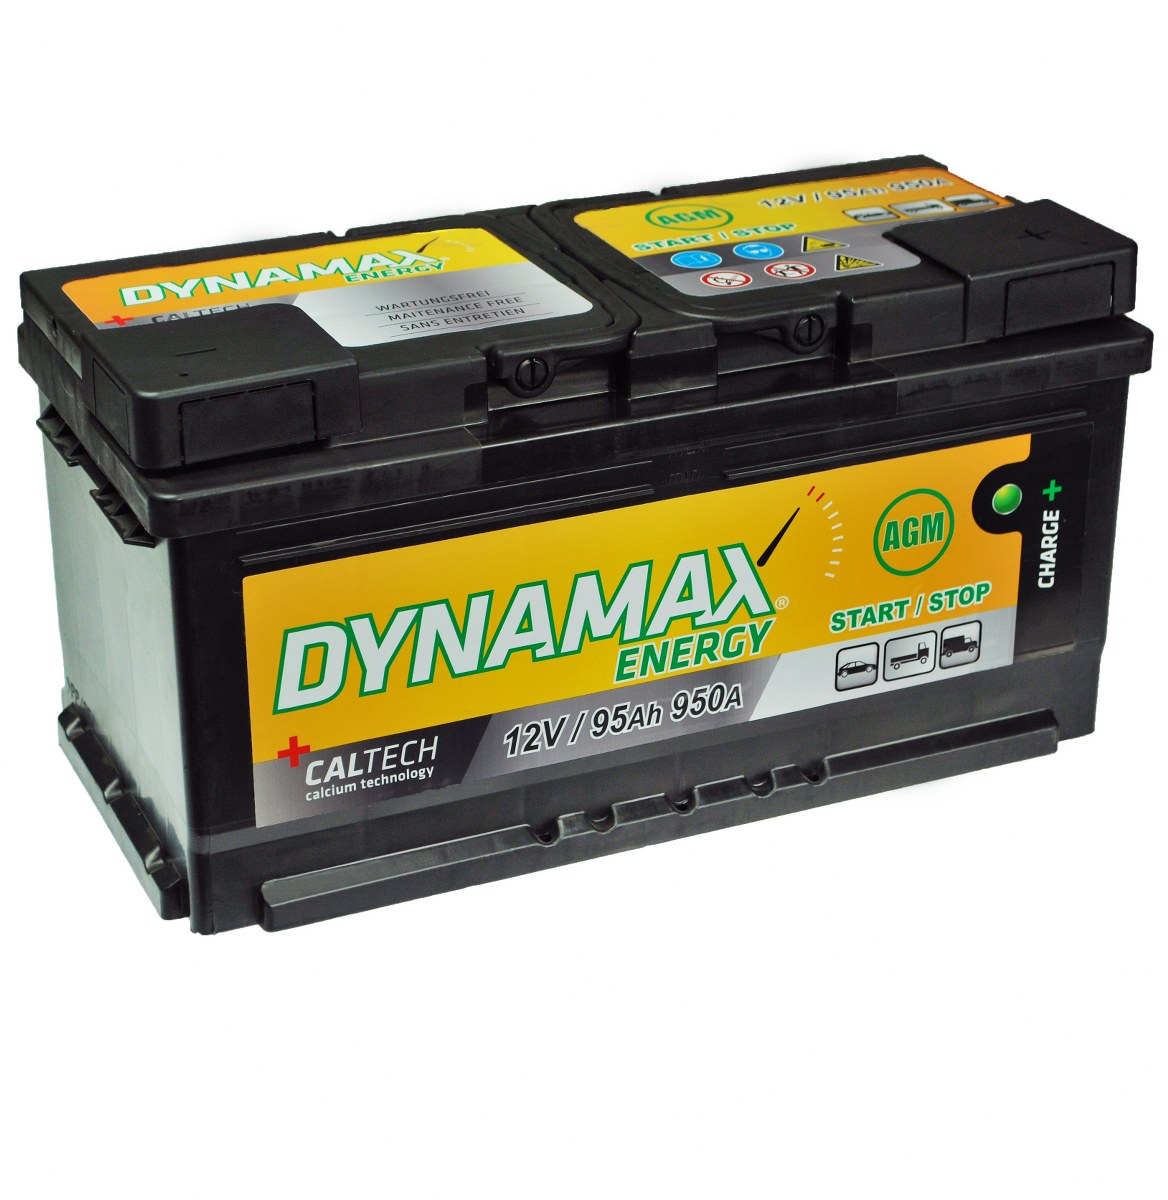 95ah agm autobatterie dynamax energy start stop 12v start. Black Bedroom Furniture Sets. Home Design Ideas